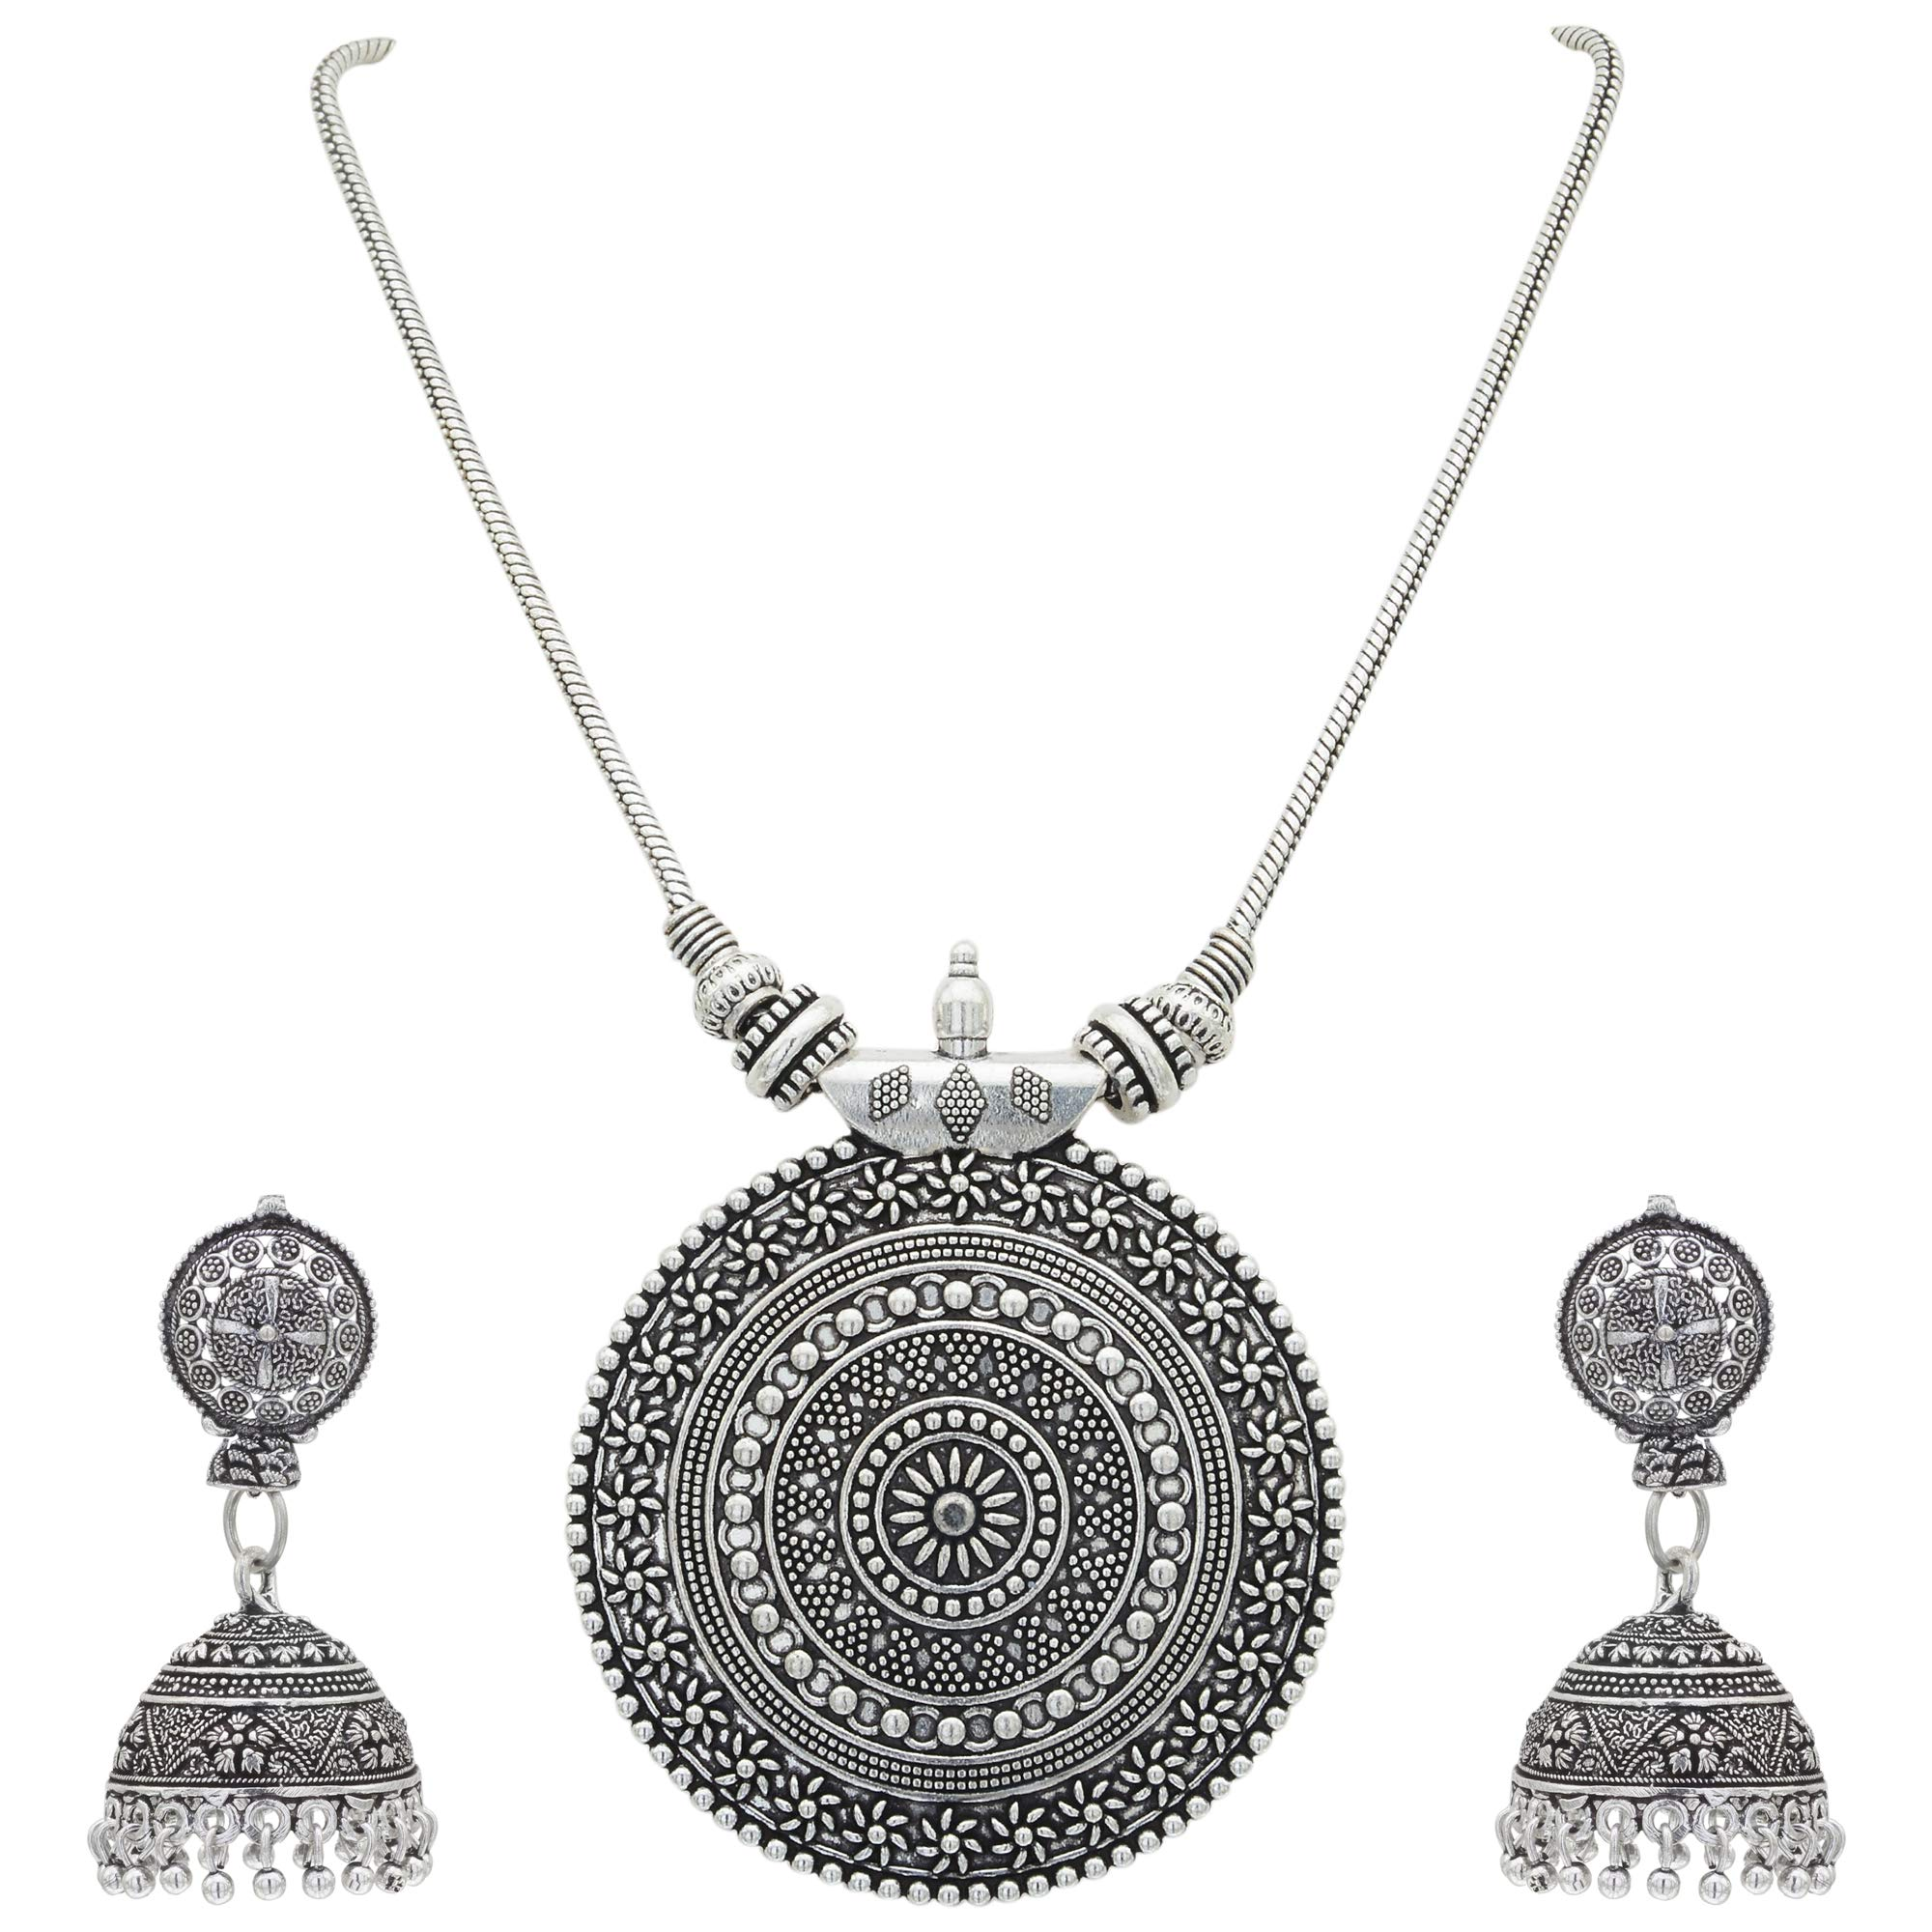 Sasitrends Oxidised German Silver Pendant Necklace with Earrings for Women and Girl's product image